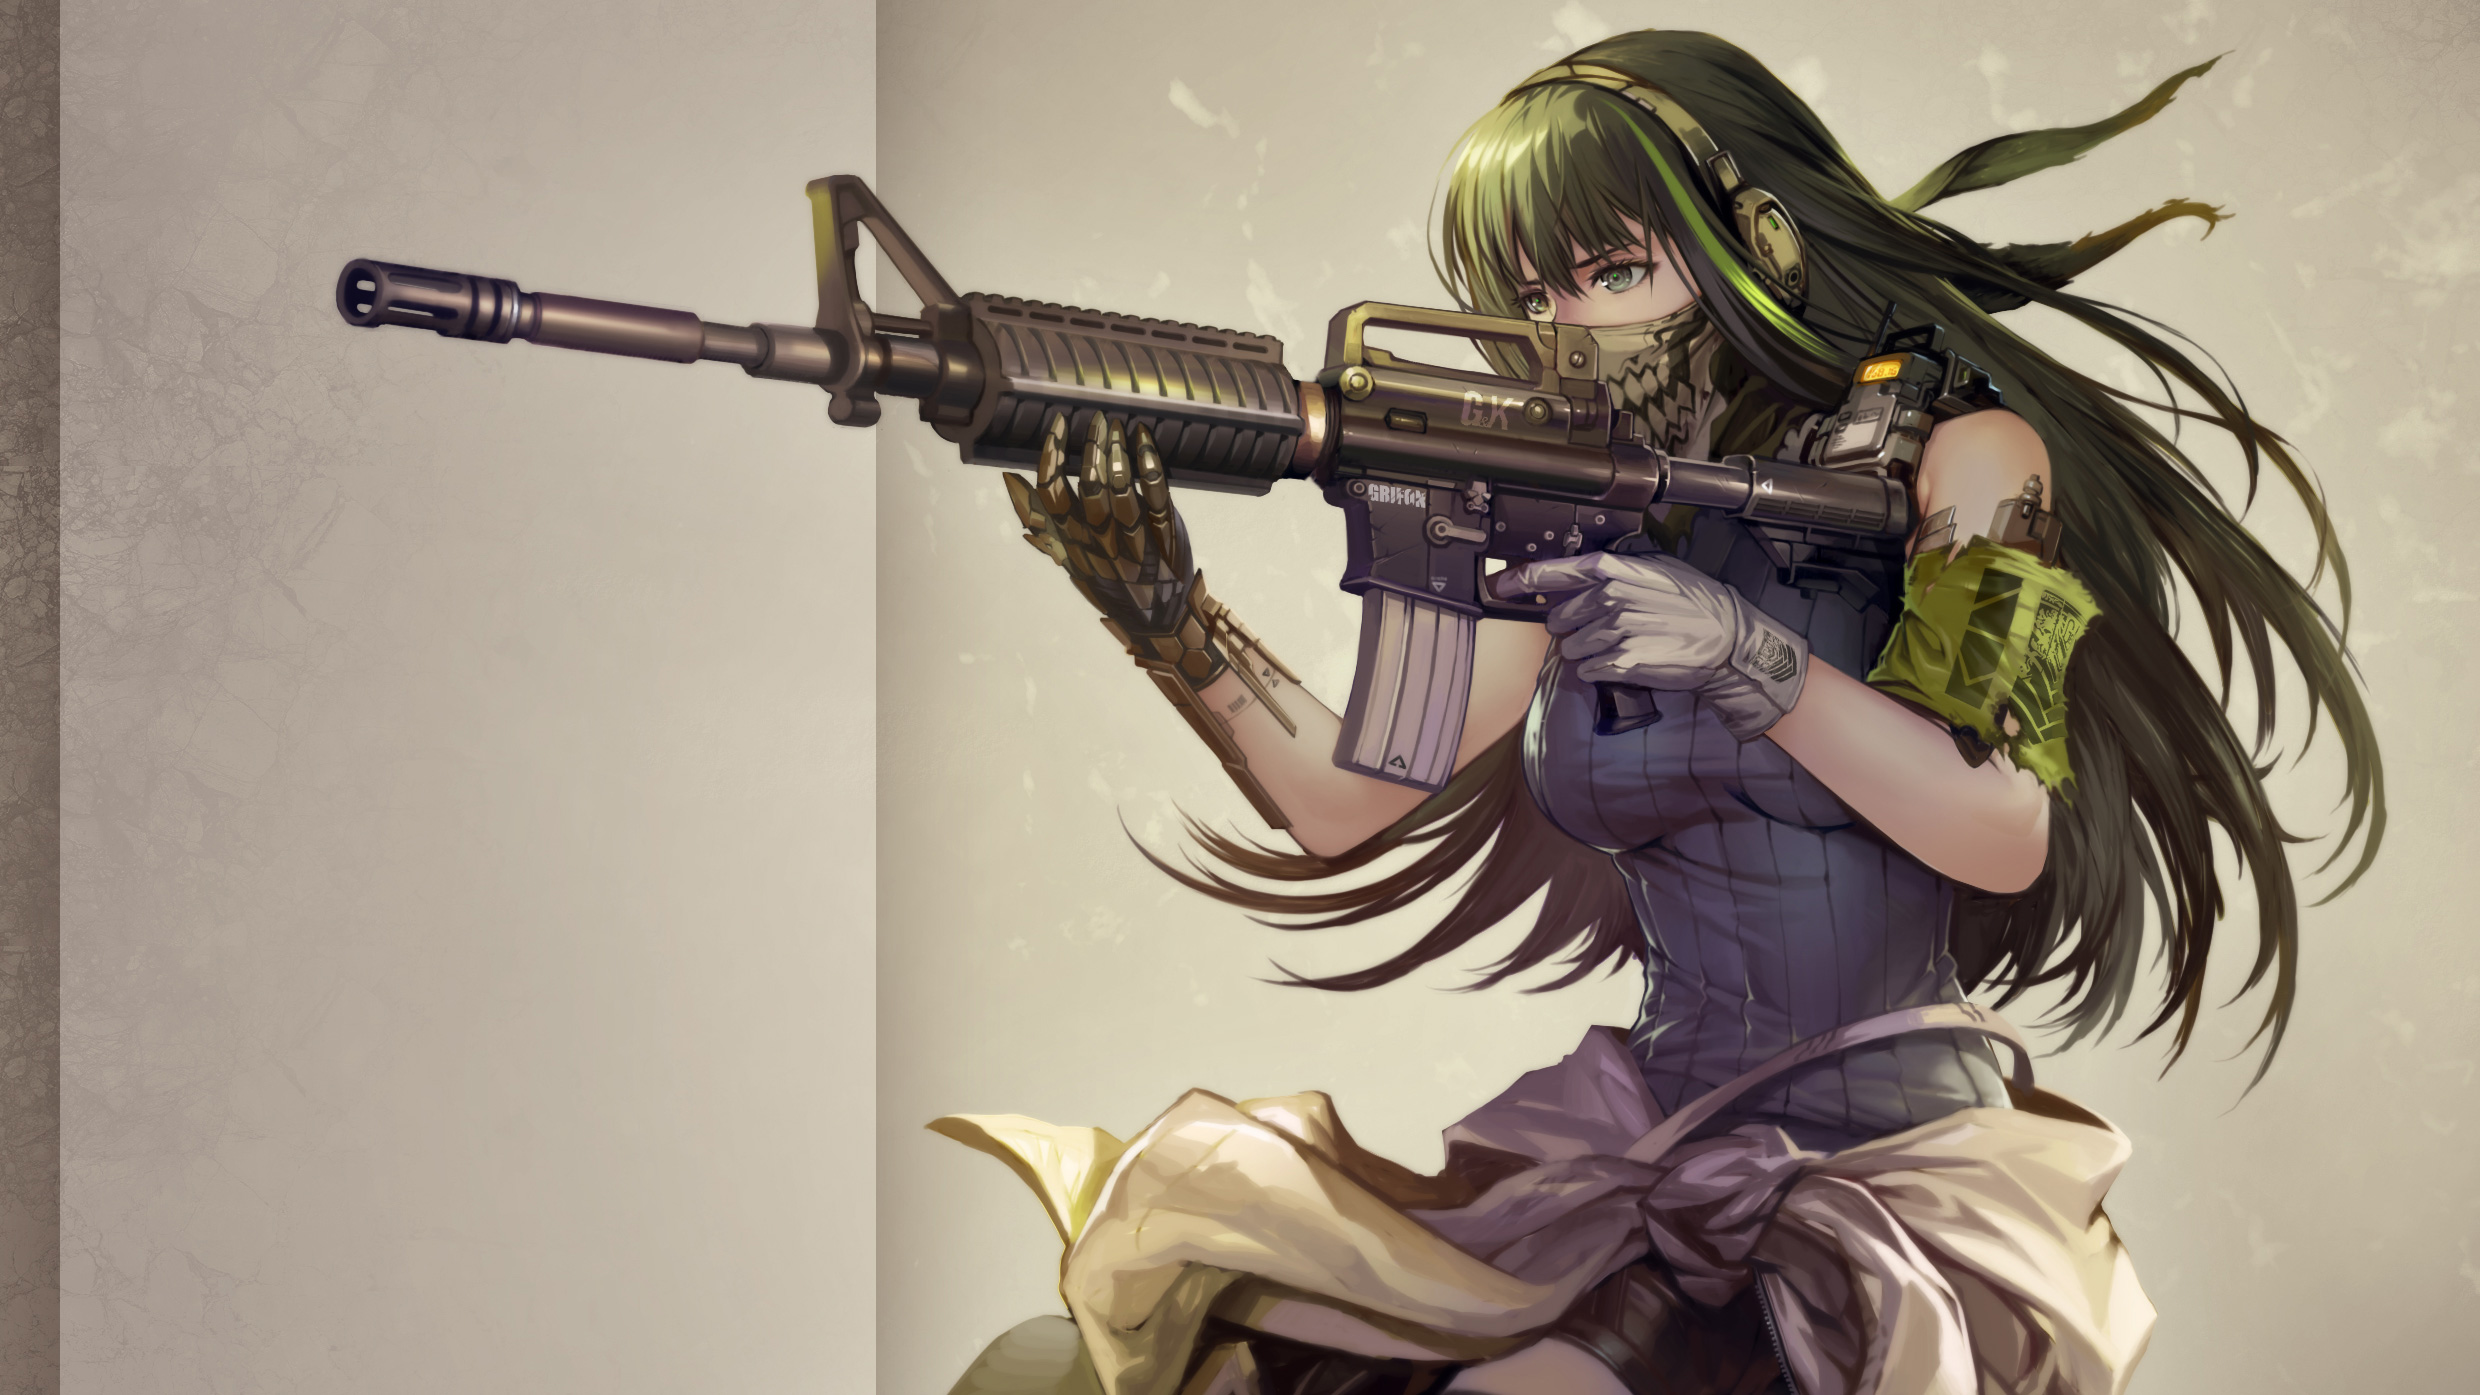 Cool 3d Wallpapers For Walls Girls Frontline Anime Hd Anime 4k Wallpapers Images